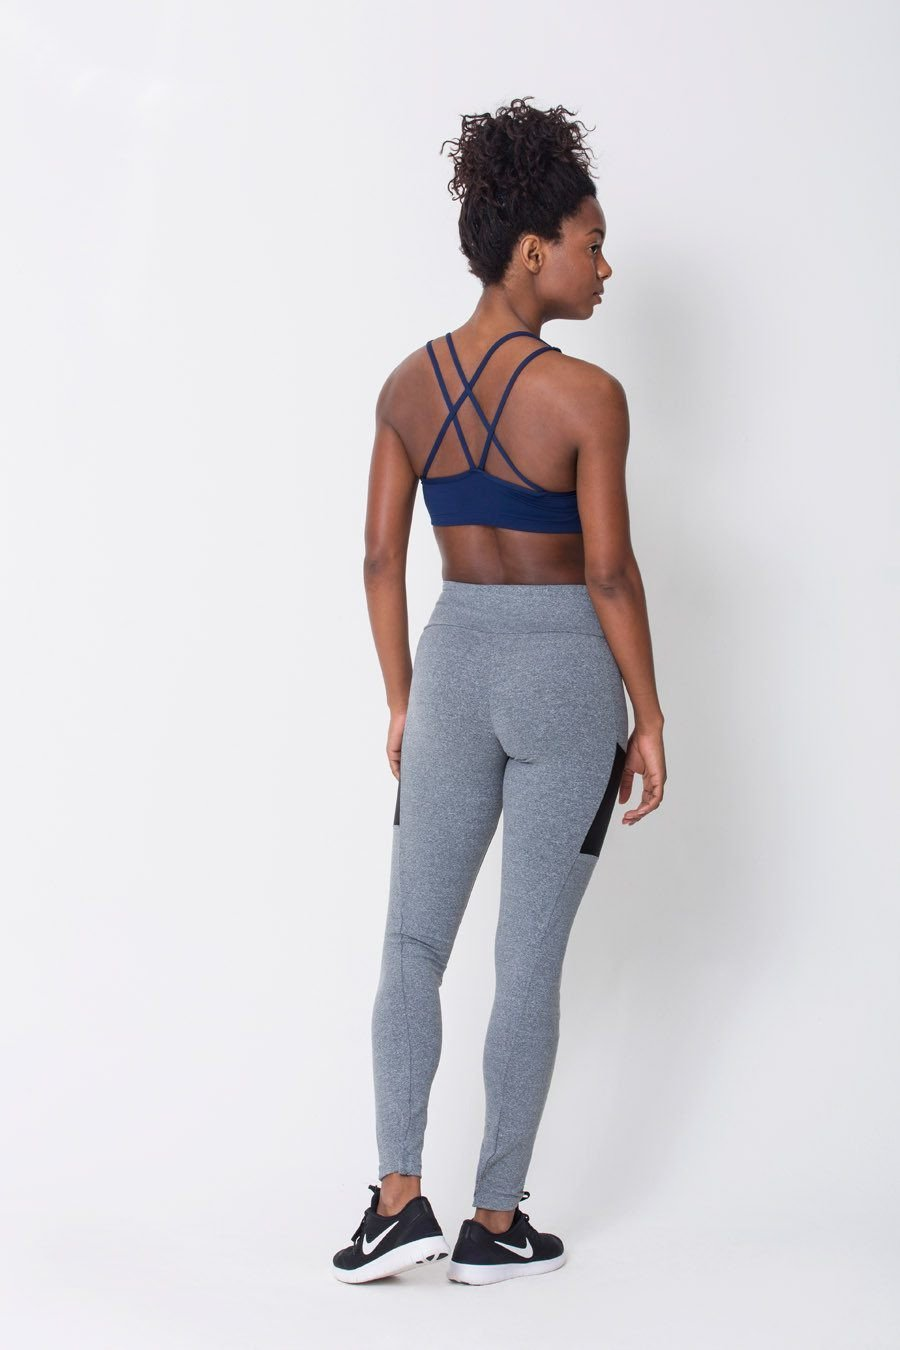 Grey Workout Legging - LoveSylvester